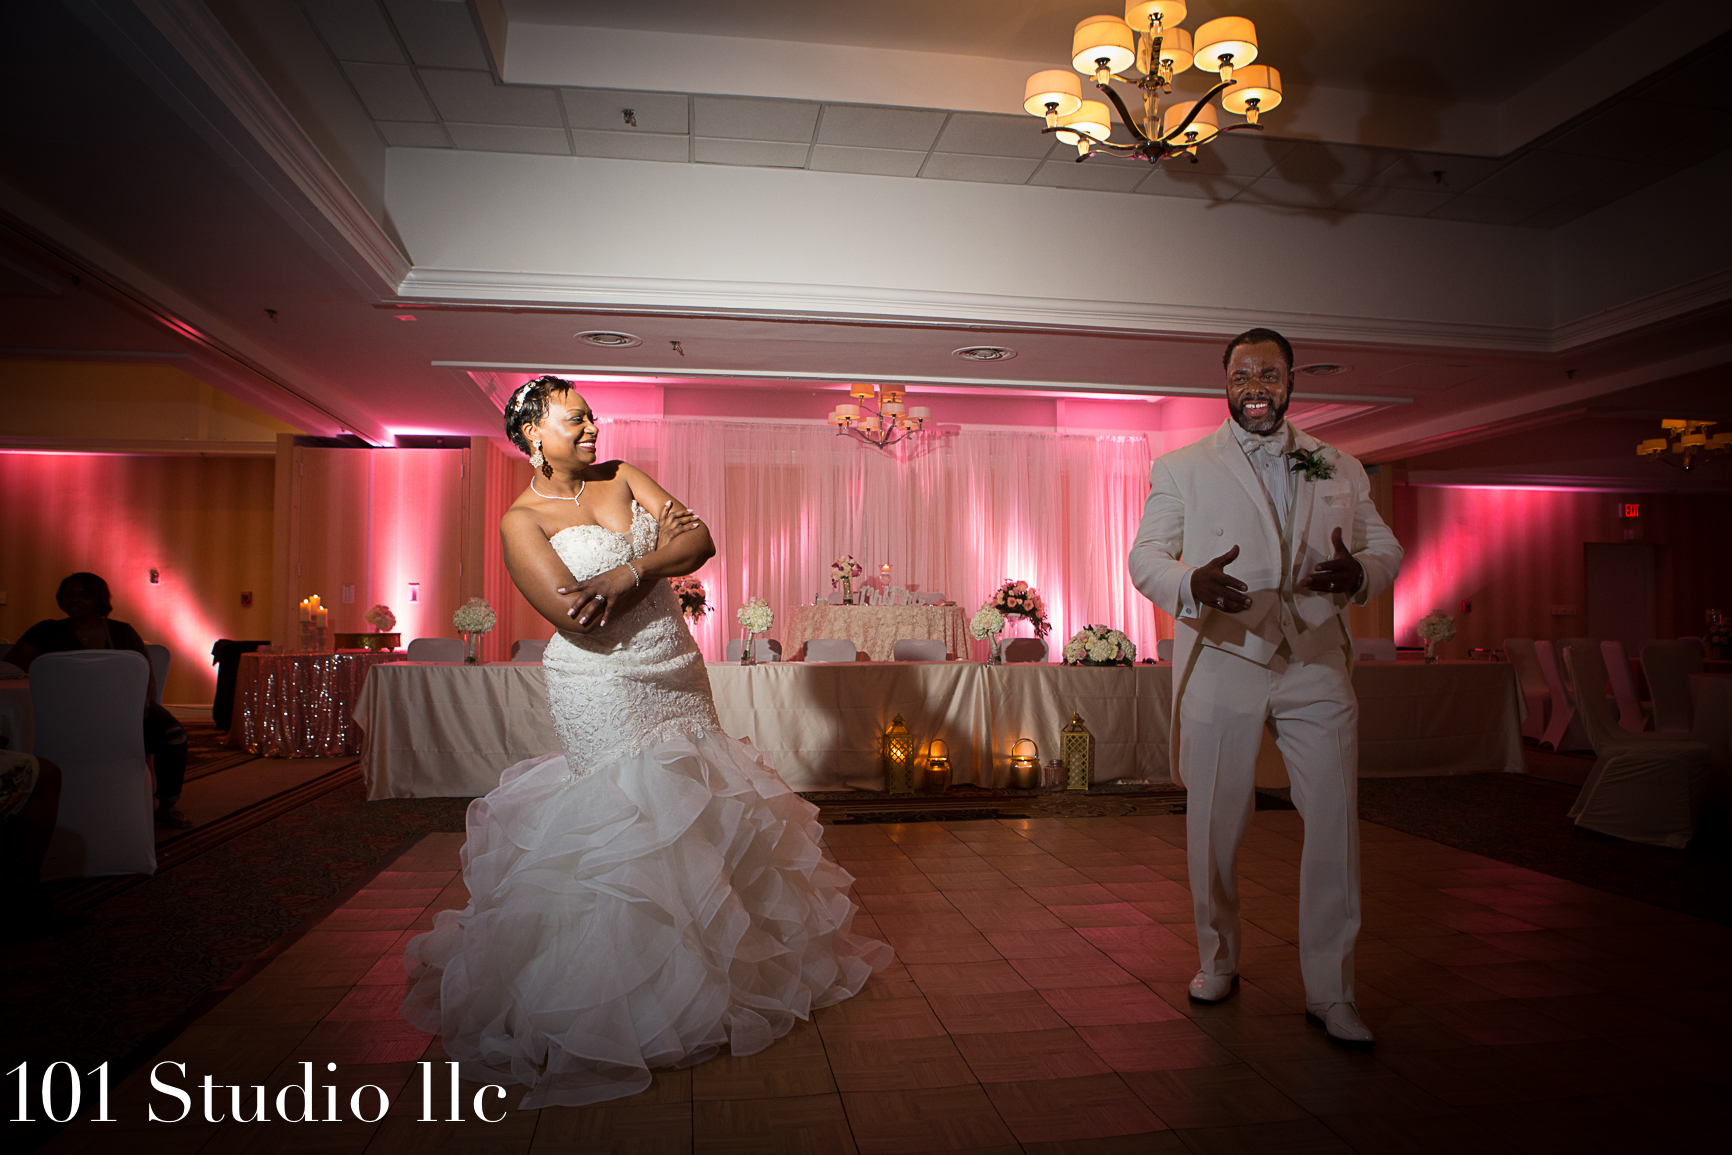 Double Tree at Hilton Raleigh wedding venue -  101 studio llc -35.jpg